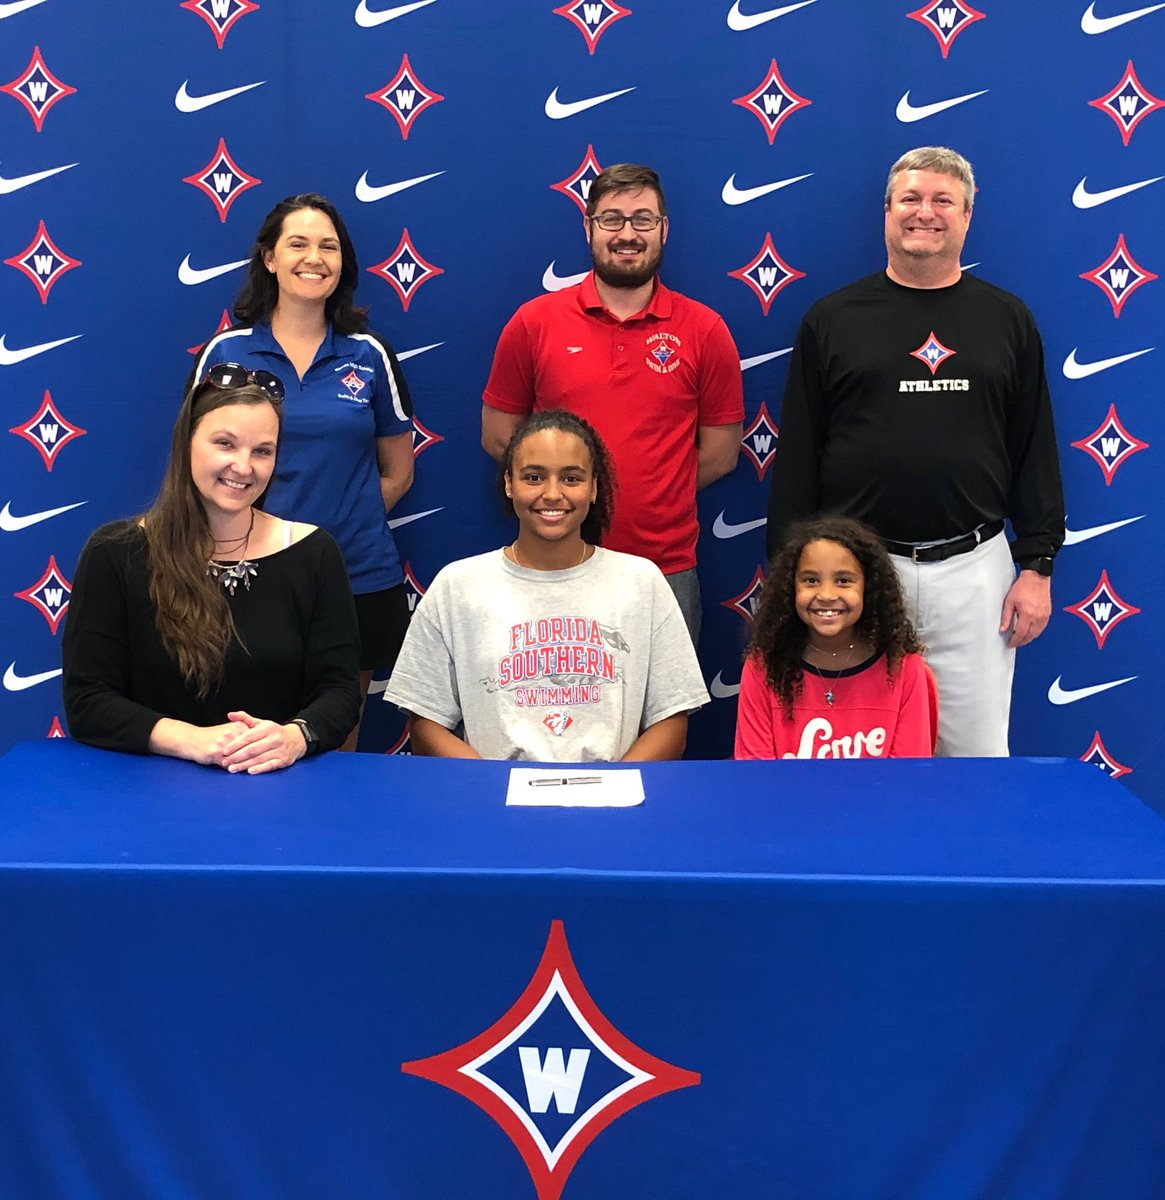 Congrats to swimmer Jazzy Hoffman on her recent signing with Florida Southern. Go Raiders and Go Mocs!